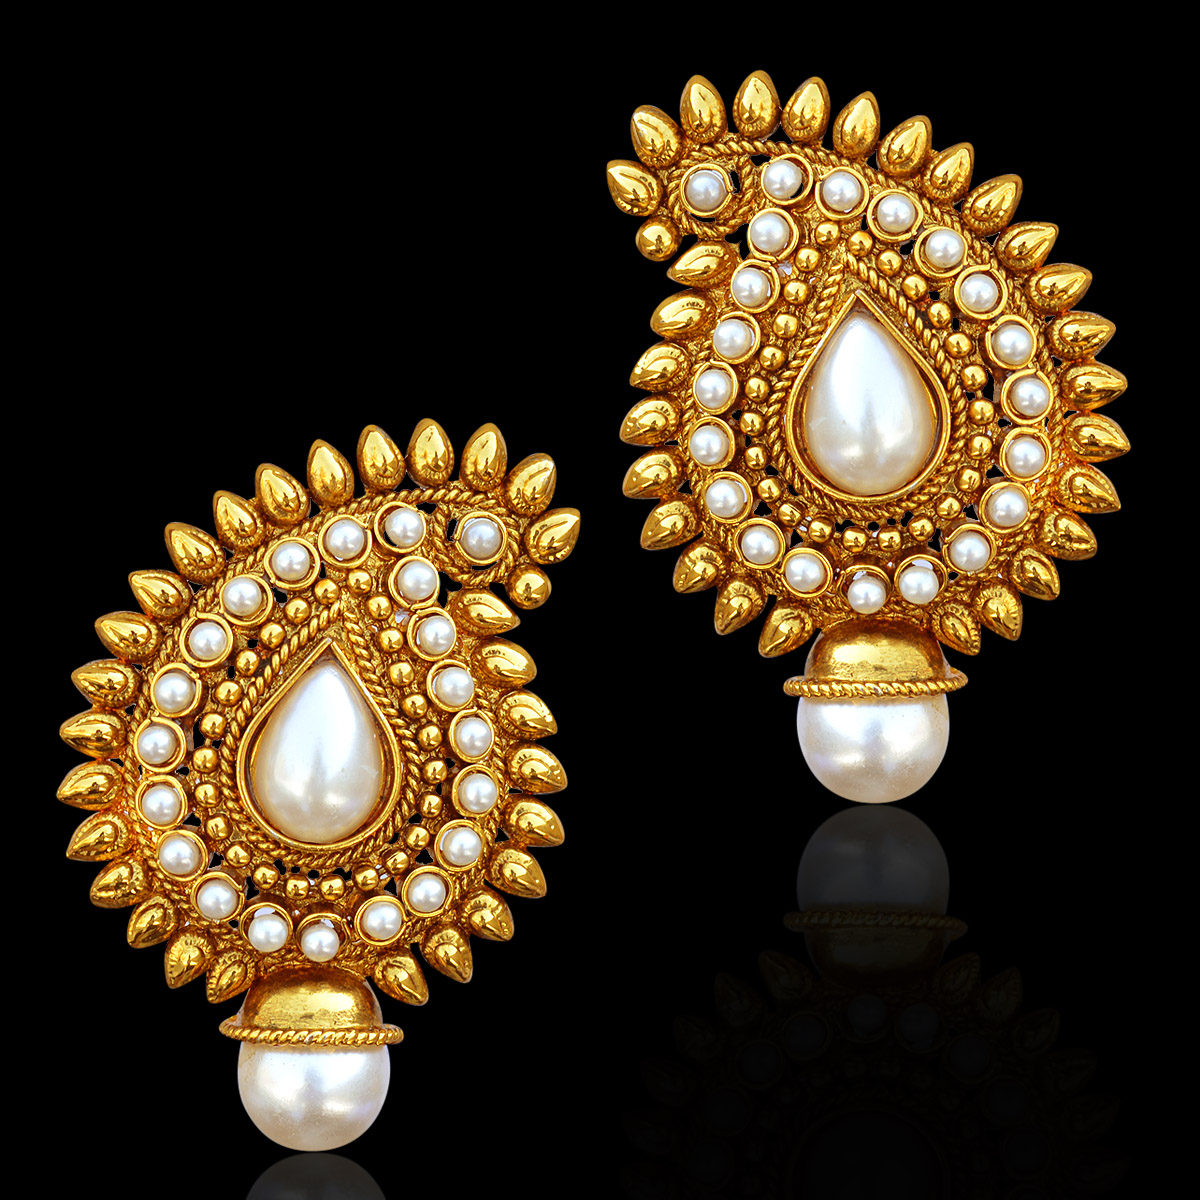 Traditional Indian gold earrings designs